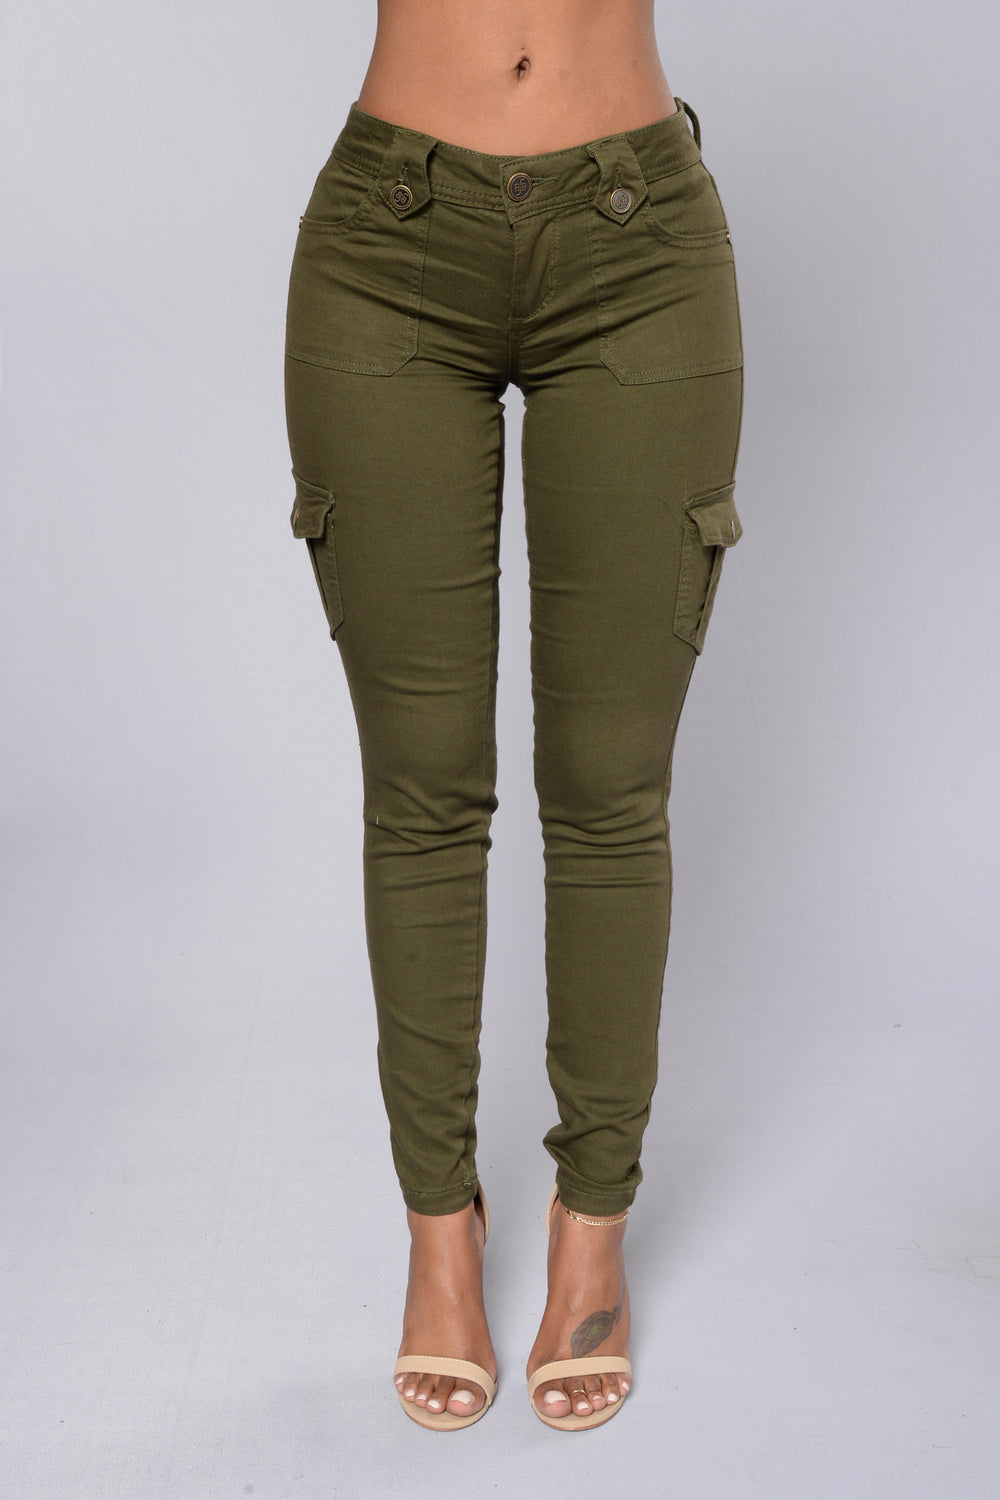 Army Strong Pants - Utility Green